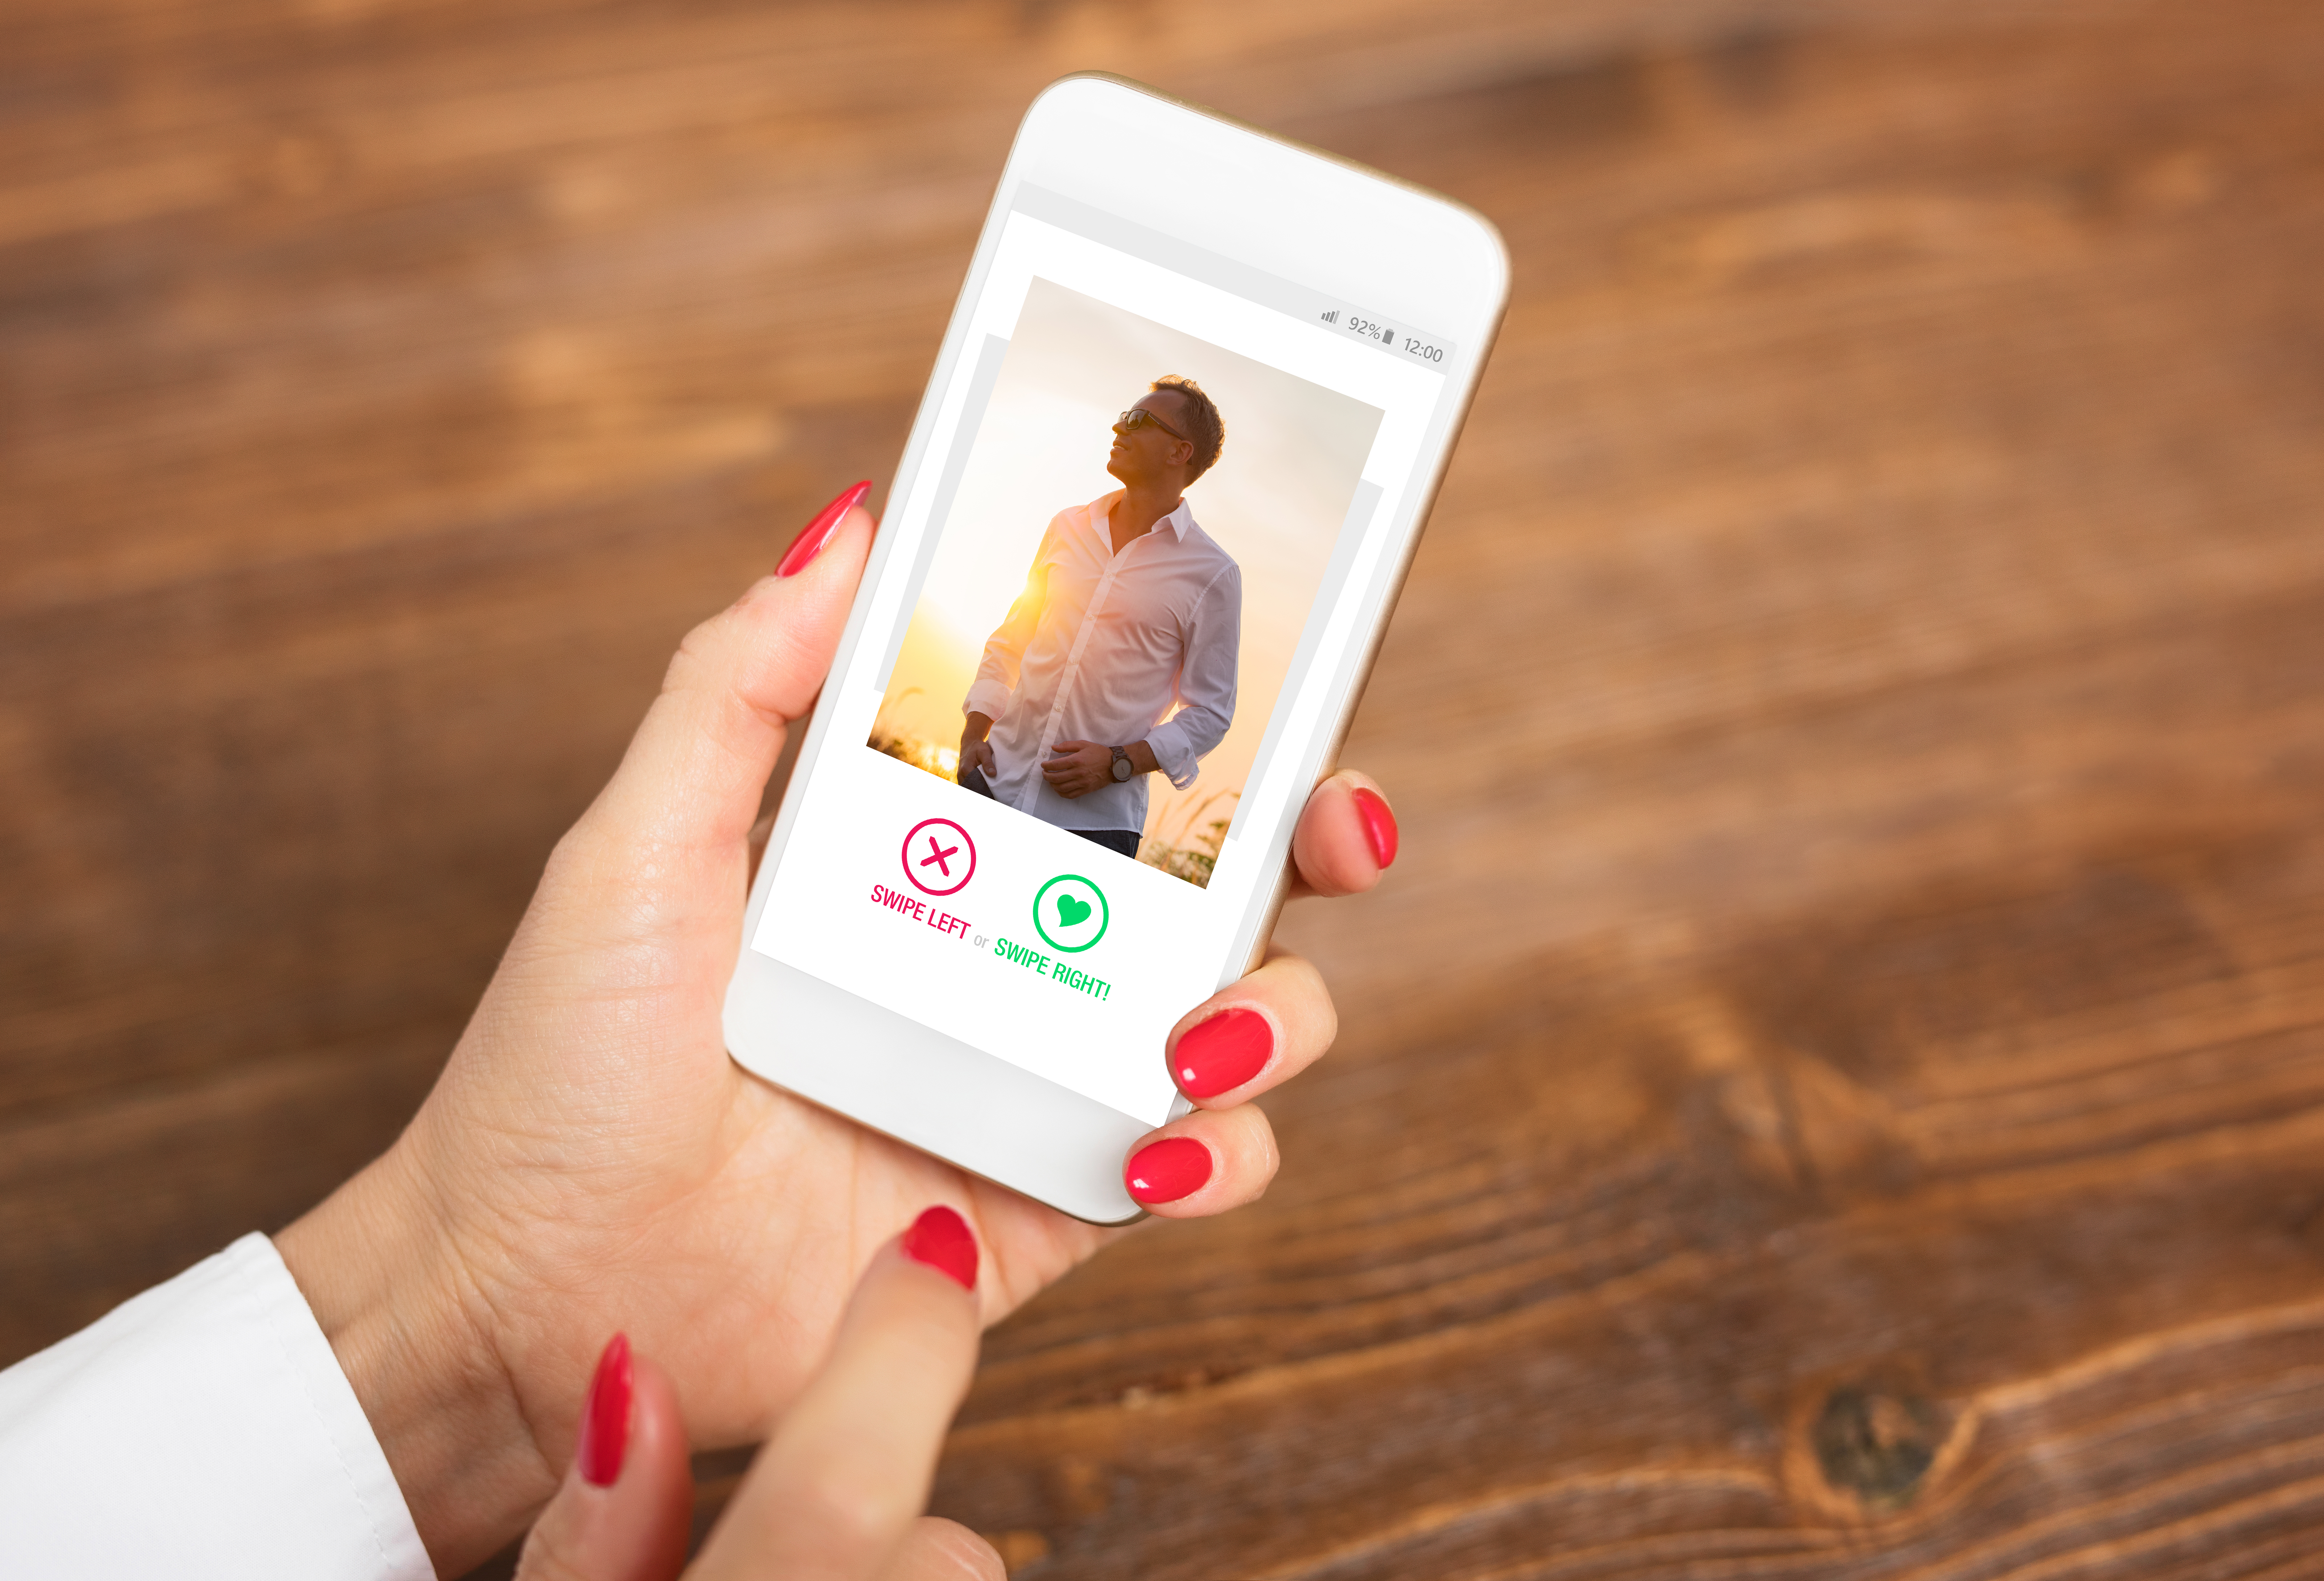 HAVE A HEART: Users of dating apps such as Tinder have been targeted by fraudsters